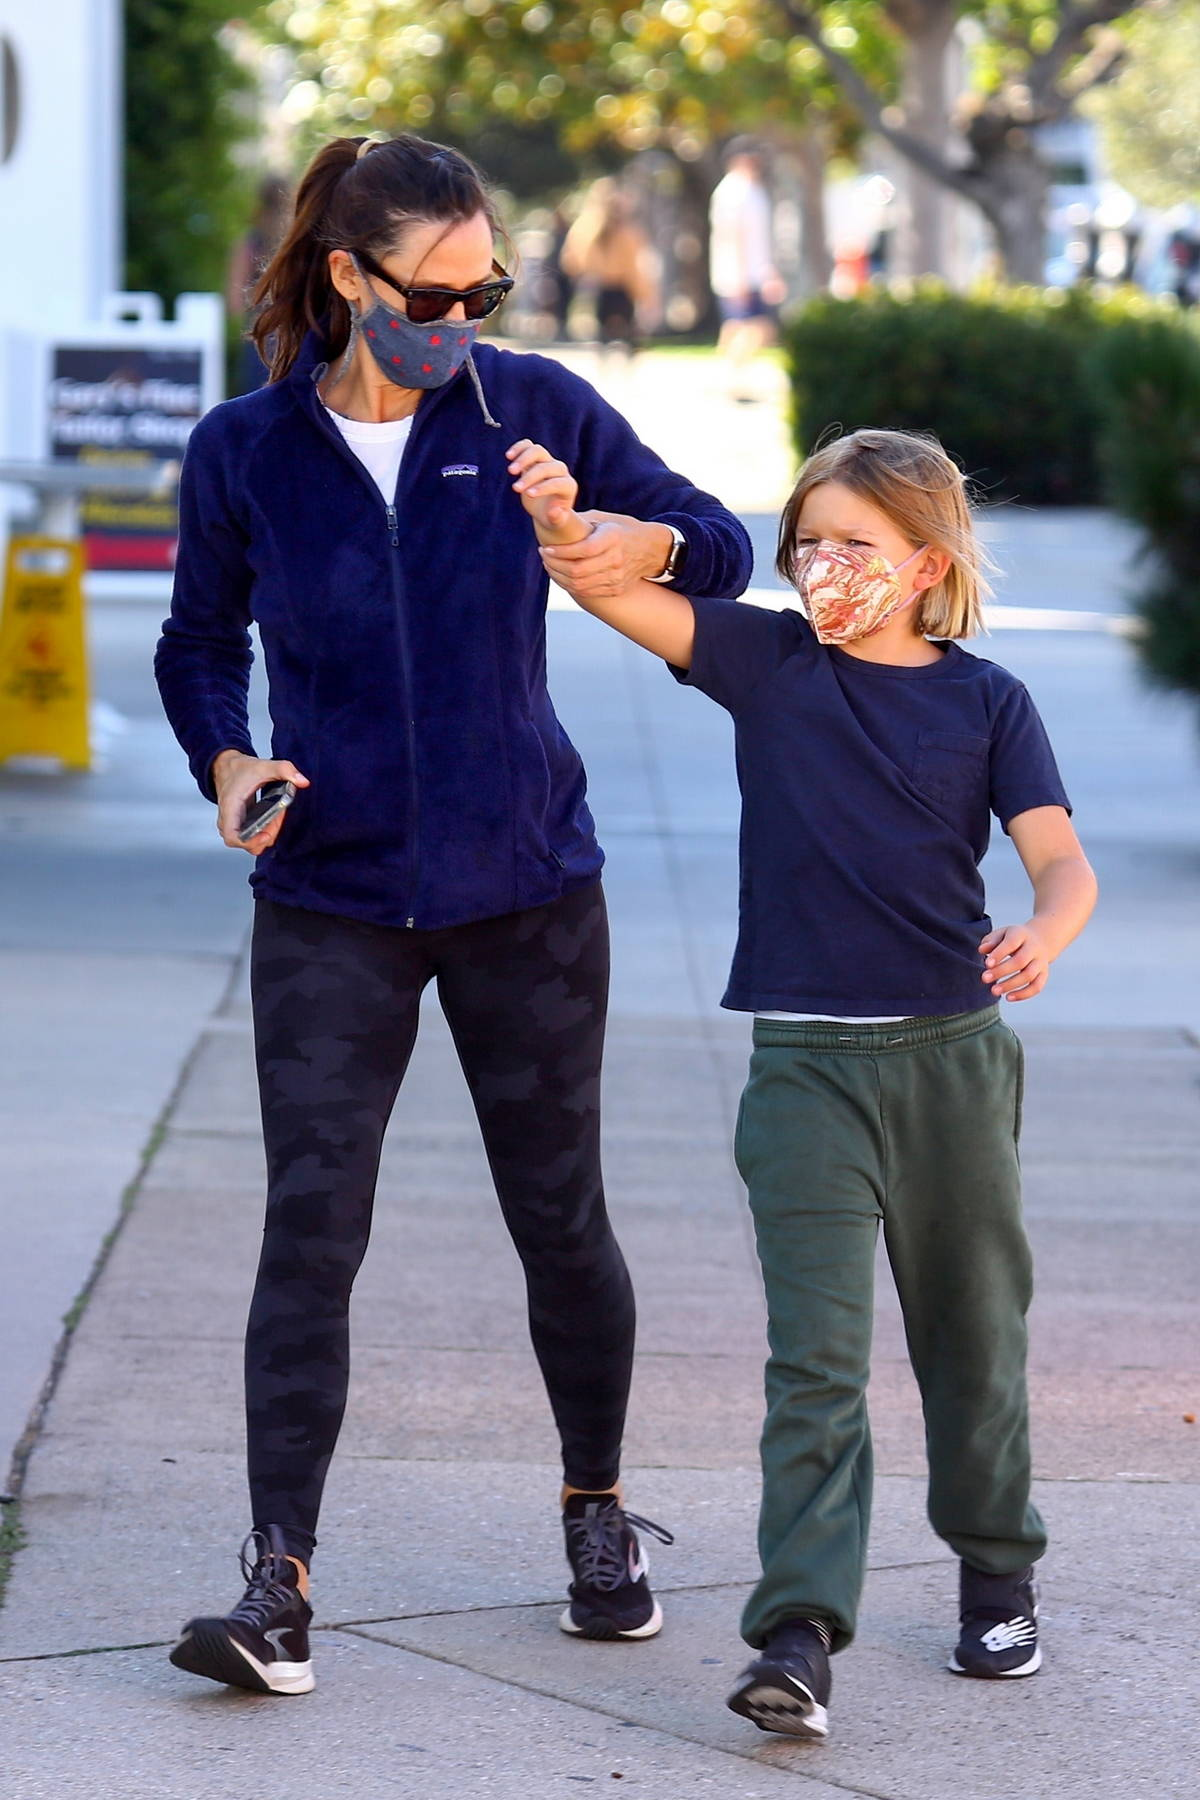 Jennifer Garner picks up some fresh produce and flowers while shopping at a farmer's market with her son in Brentwood, California